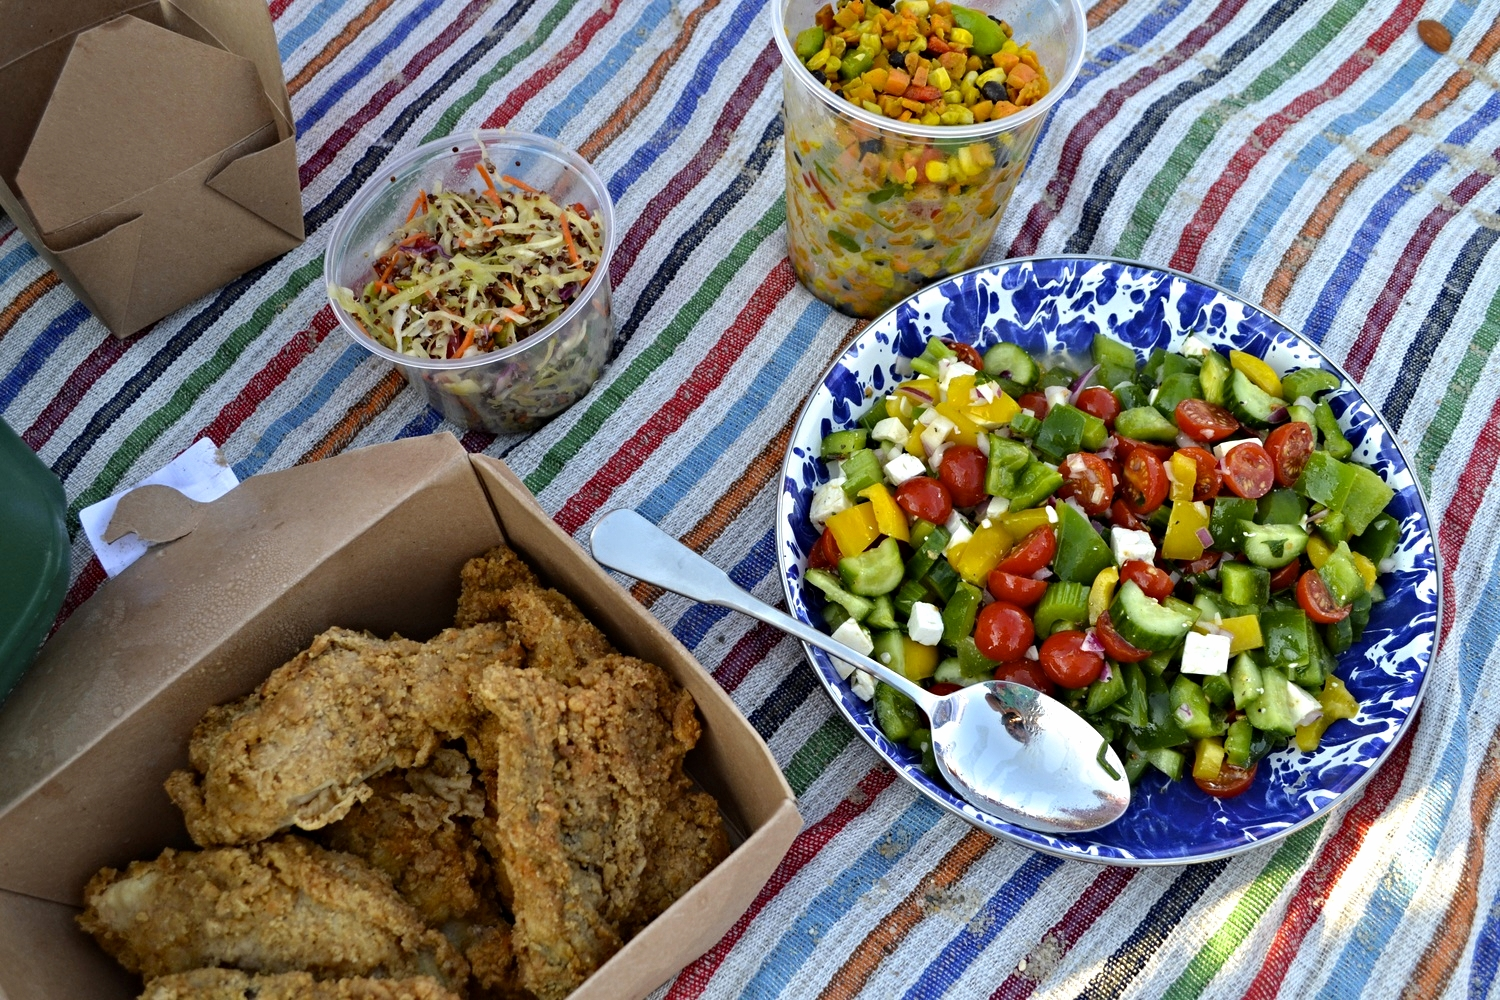 {Our spread, mostly courtesy of Bartlett's Farm}